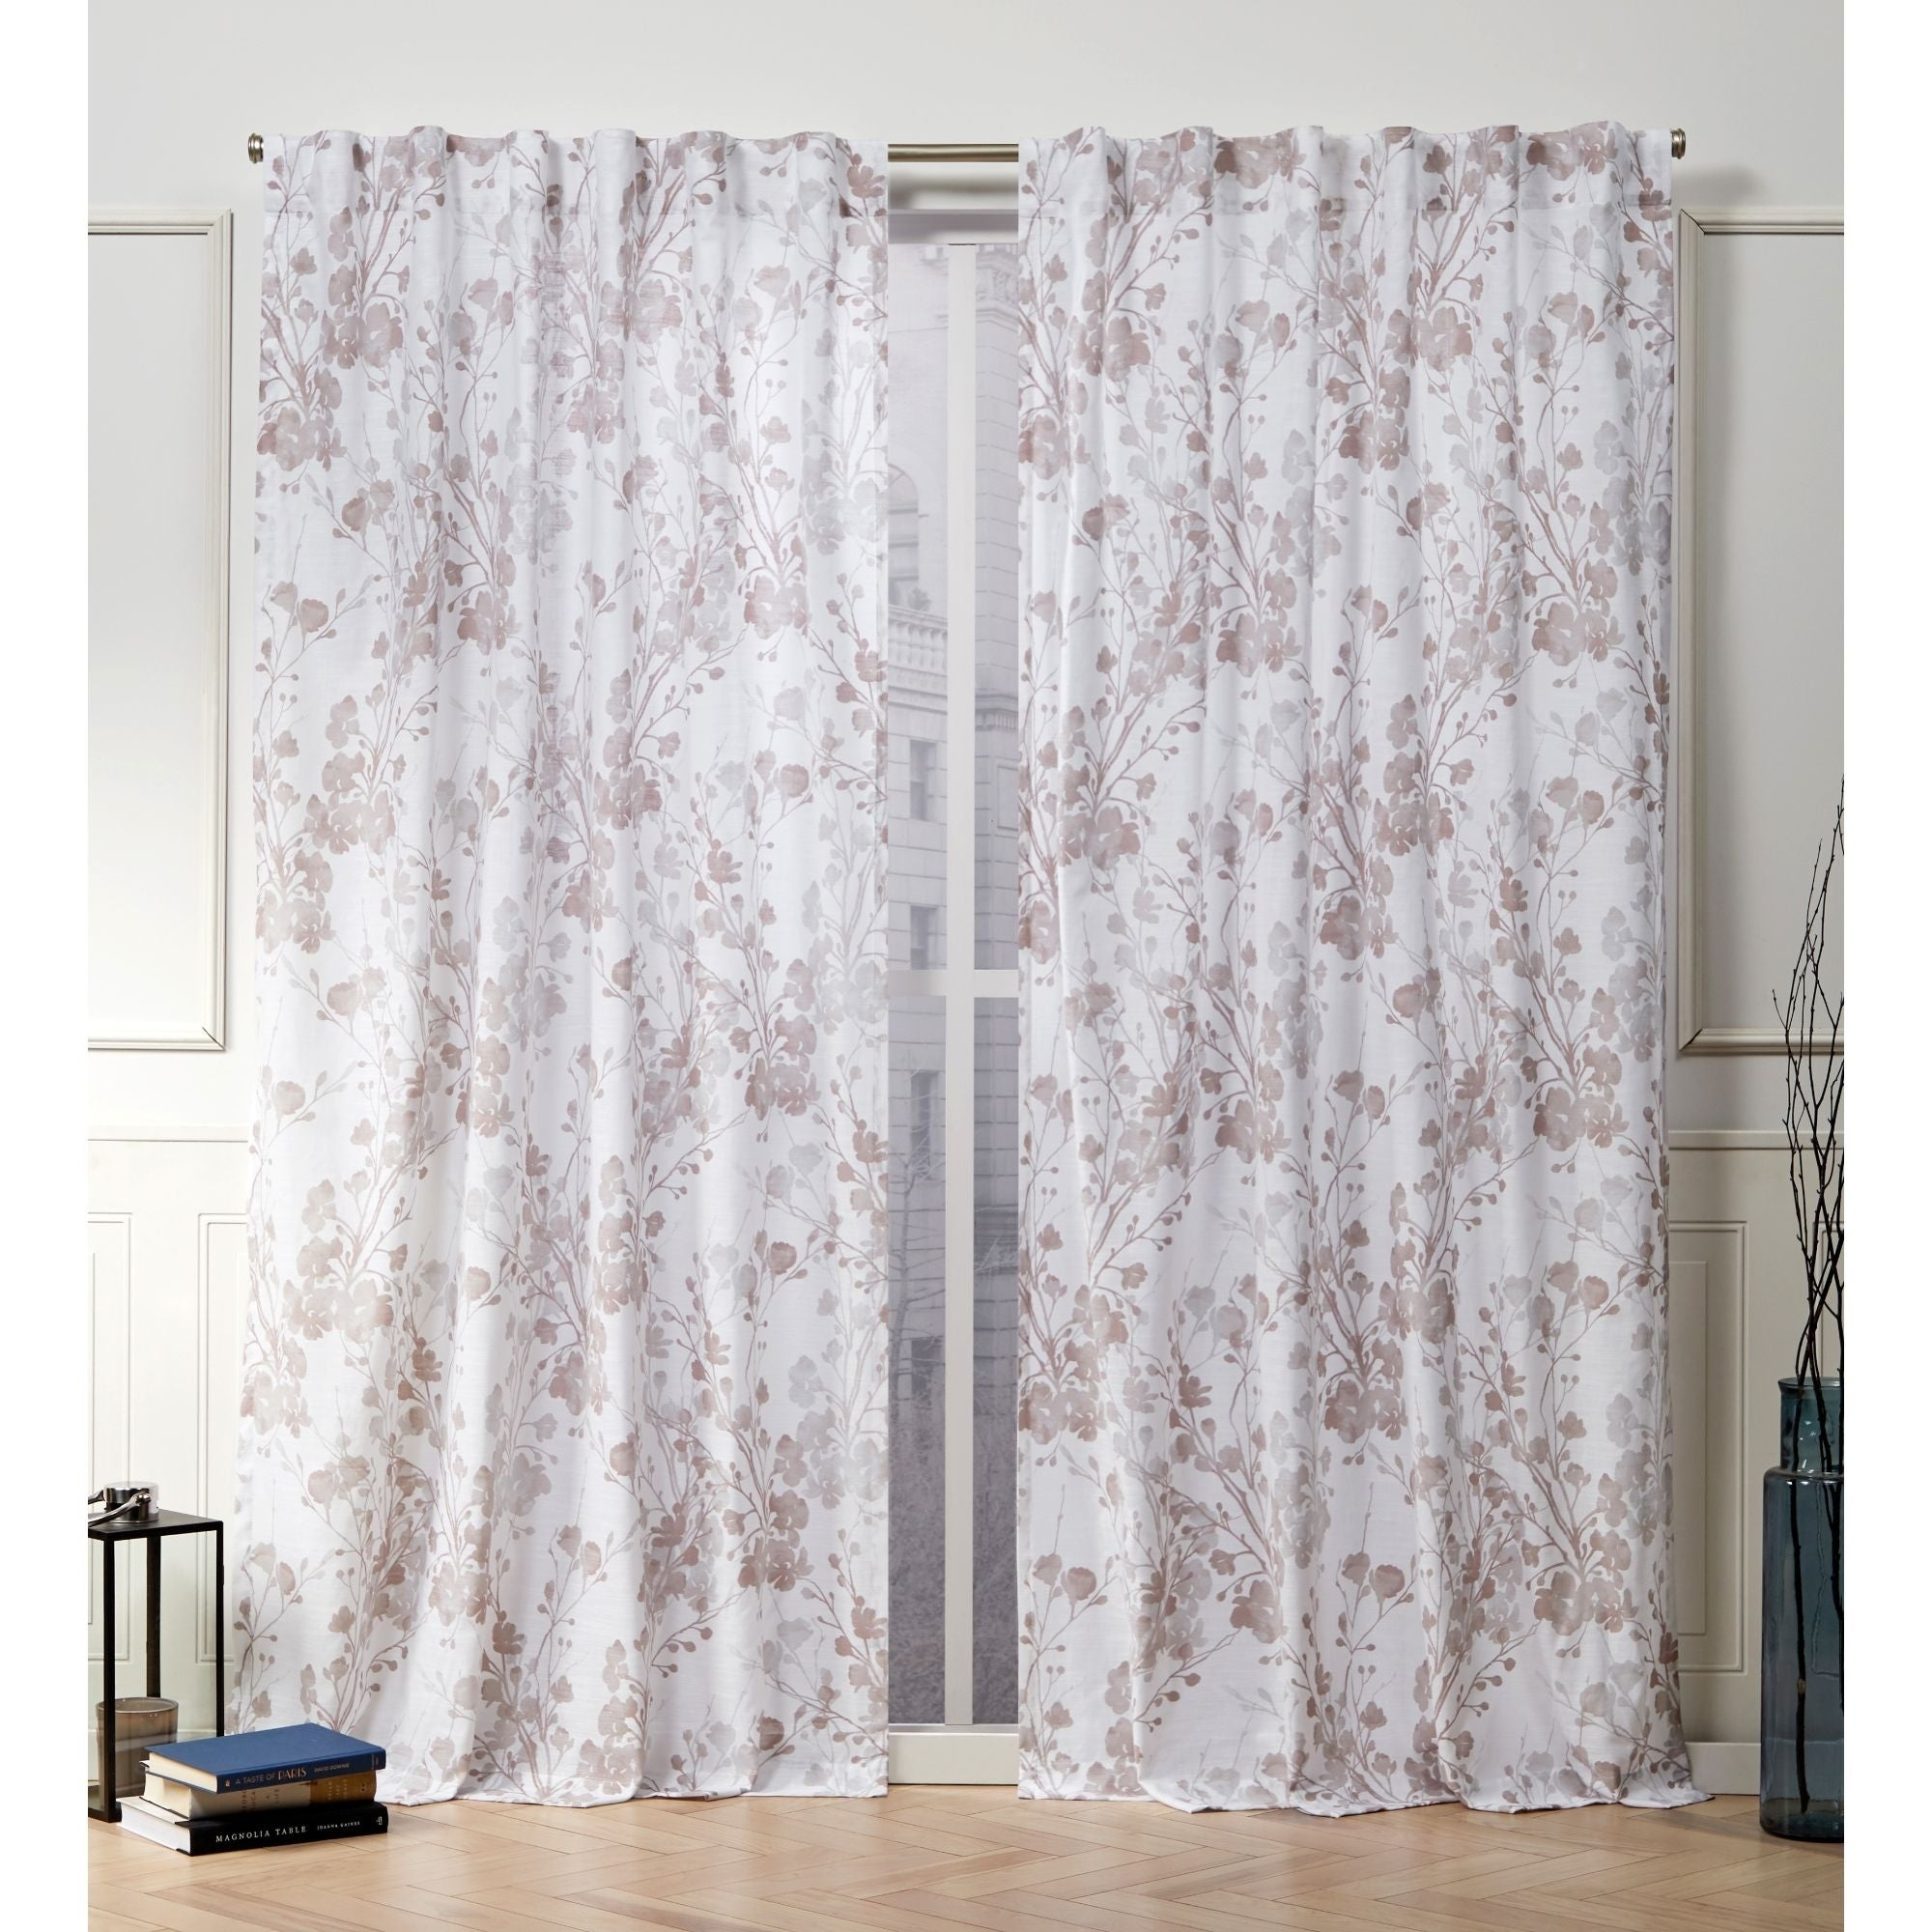 Nicole Miller Lillian Floral Cotton Hidden Tab Top Panel Pair Regarding Andorra Watercolor Floral Textured Sheer Single Curtain Panels (Image 9 of 20)